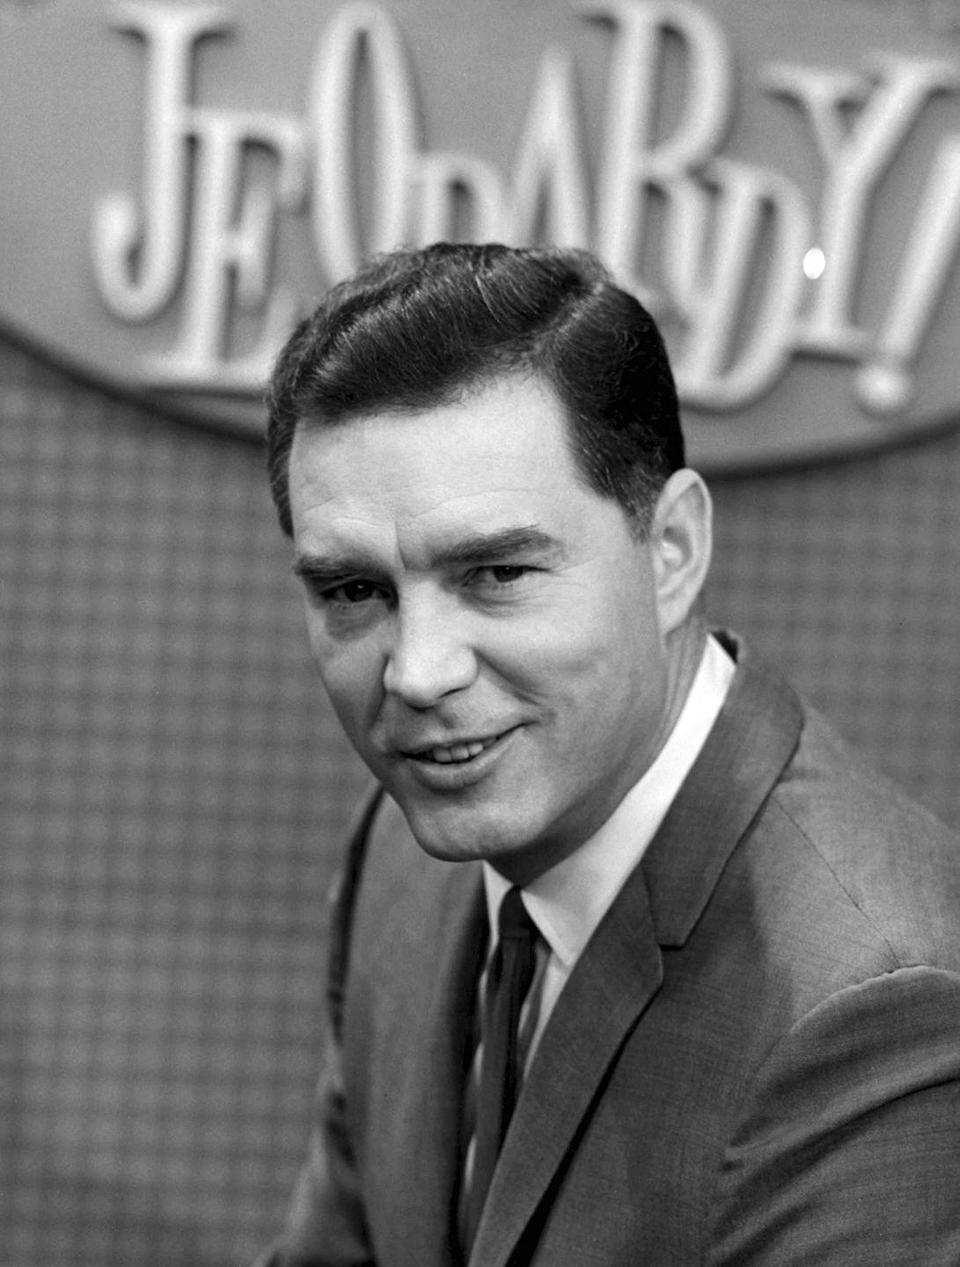 <p>Few people remember a time for <em>Jeopardy! </em>without Alex Trebek, but the show actually dates back to 1964 with a different host. Art Fleming originally led the quiz show until 1975, and then again from 1978–1979. Originally an actor, Fleming was discovered by Merv Griffin for his role in a commercial. Fleming continued to act <em>Jeopardy! </em>was originally canceled, and then refused to return for the 1983 revival. Fleming died from pancreatic cancer in 1995.</p>